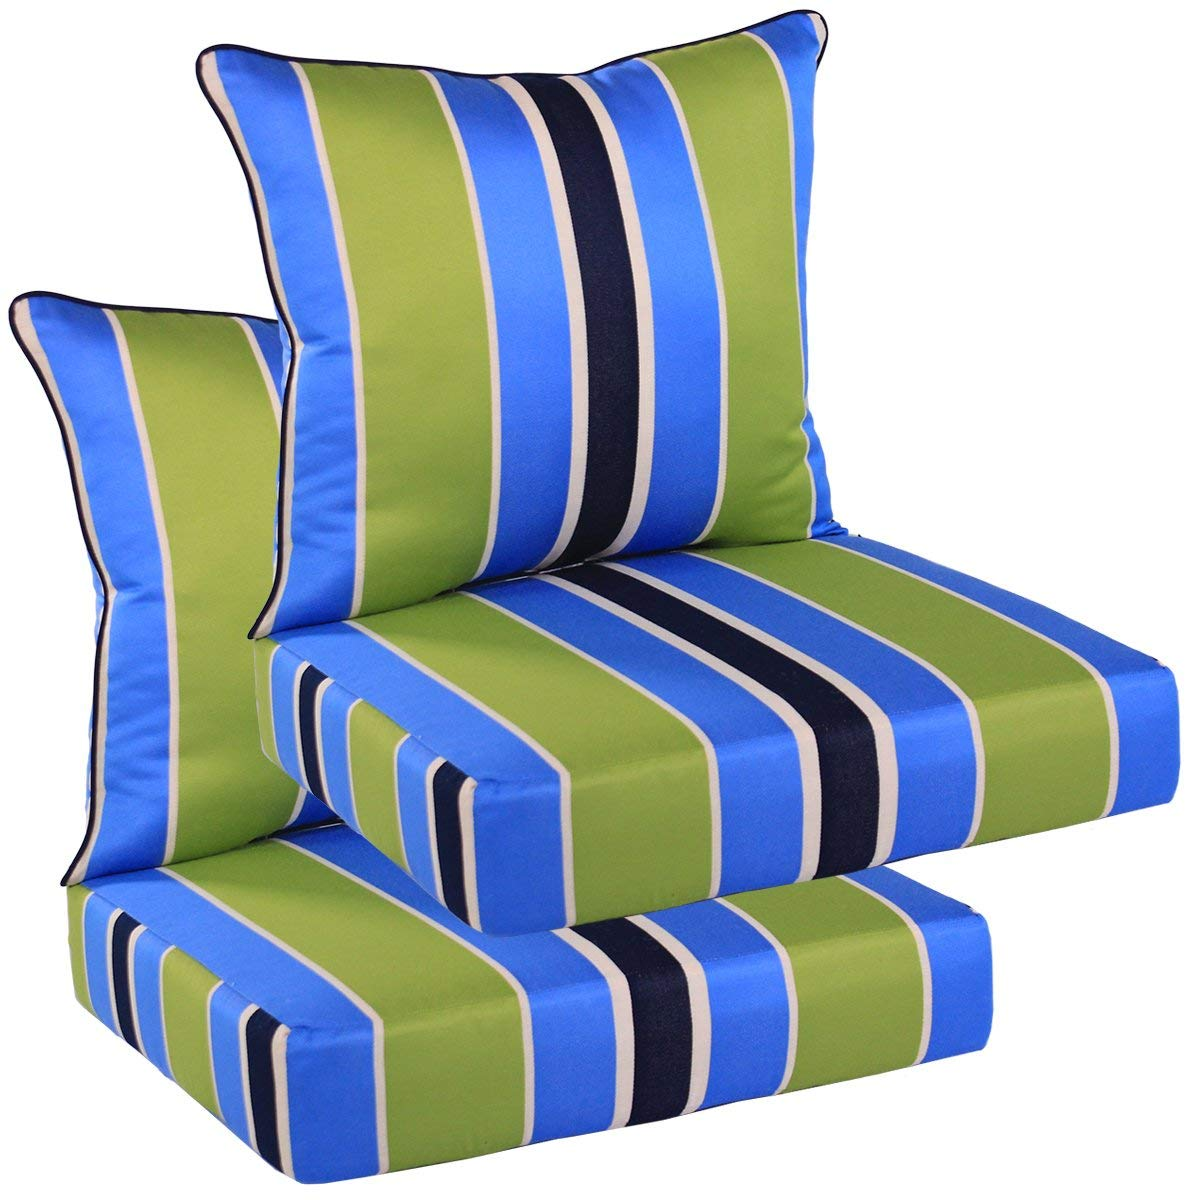 Brilliant Cheap 24 X 24 Outdoor Chair Cushions Find 24 X 24 Outdoor Andrewgaddart Wooden Chair Designs For Living Room Andrewgaddartcom